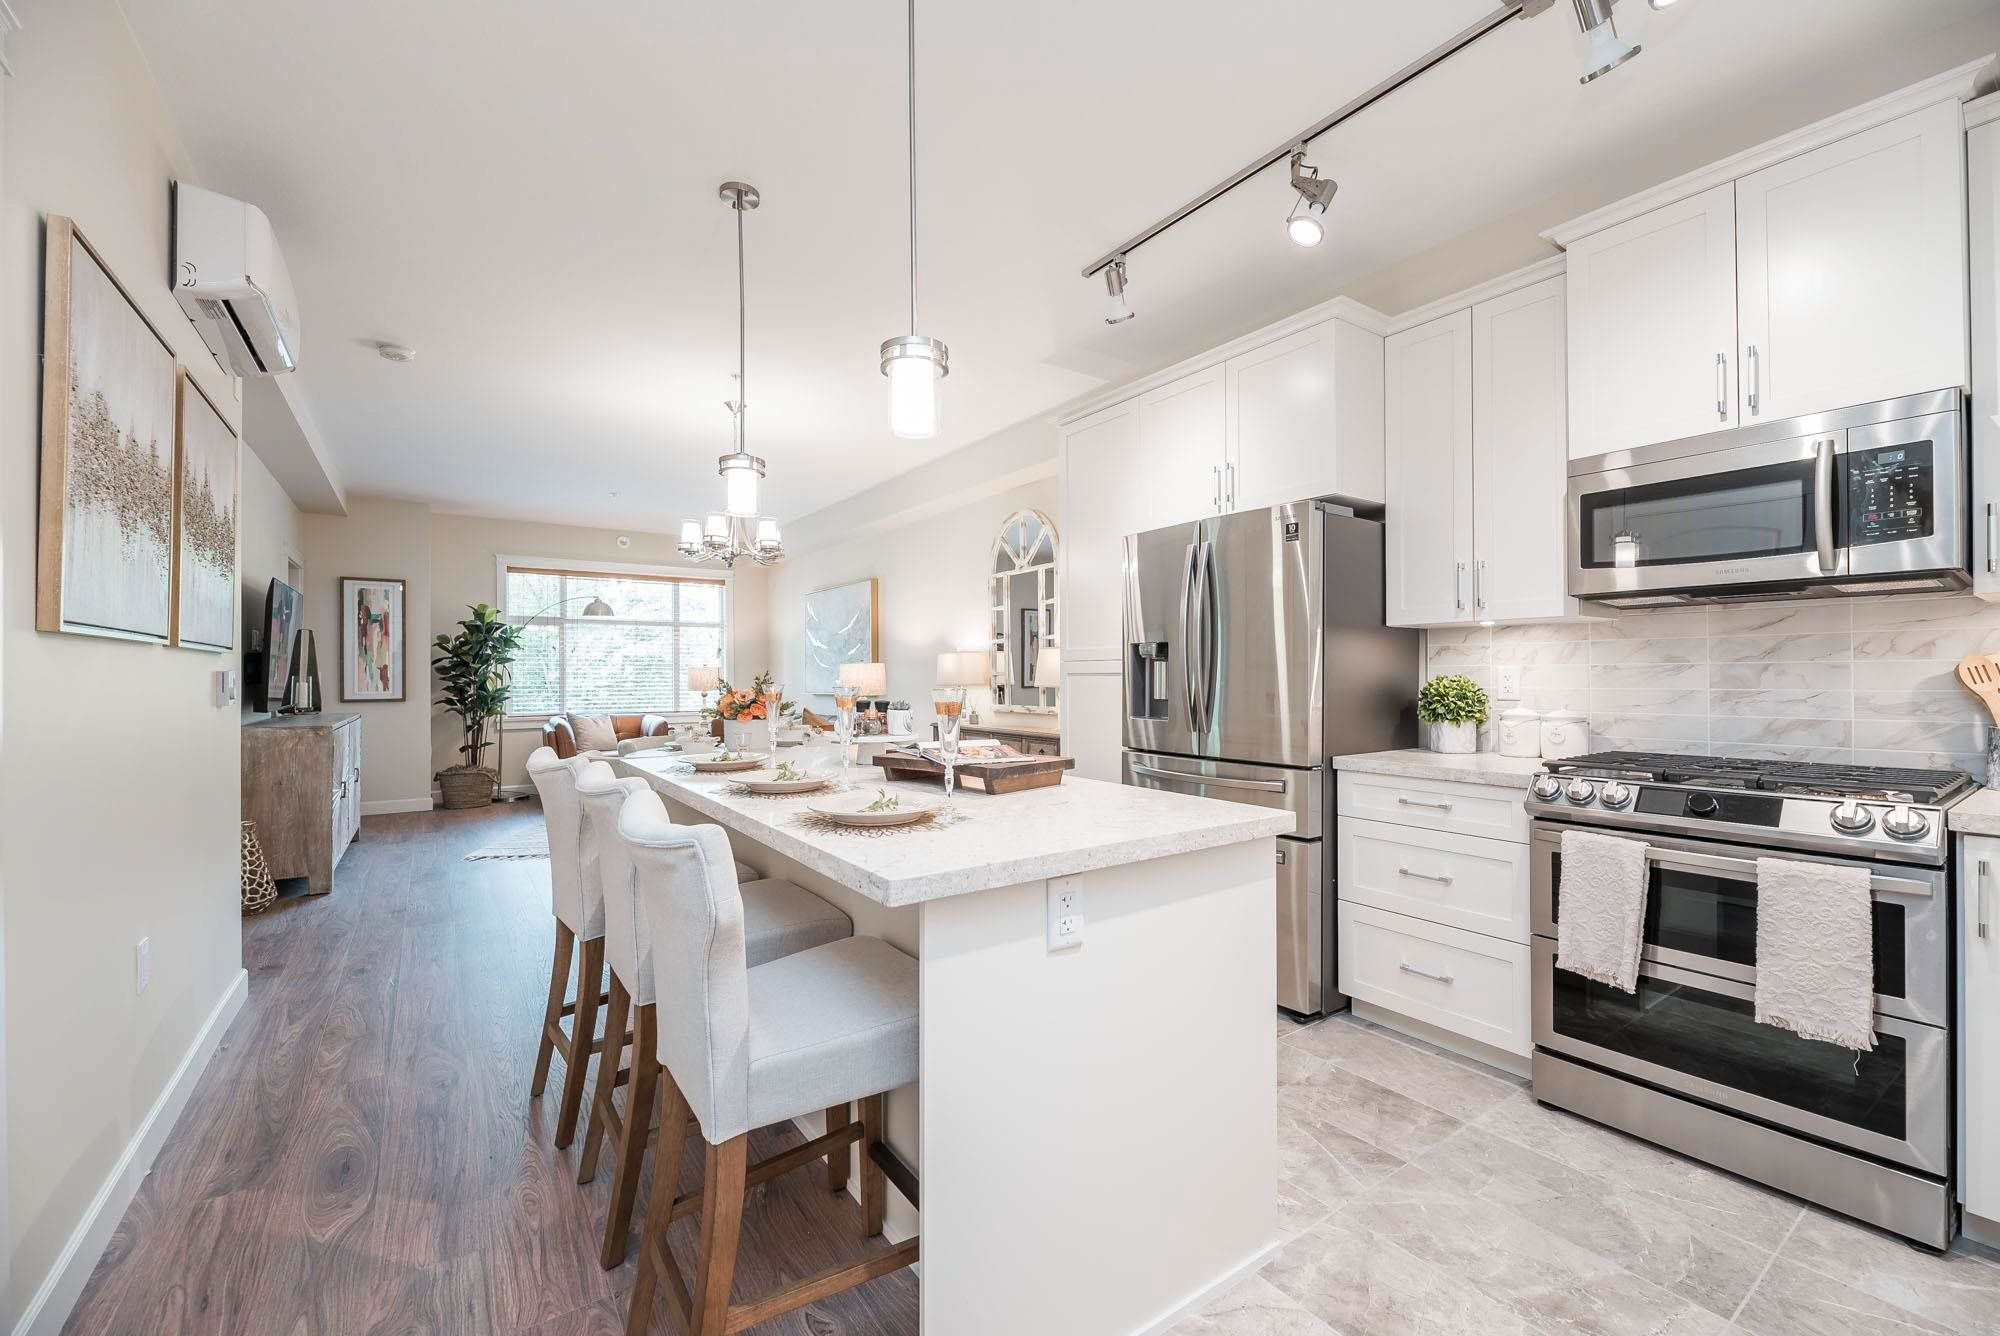 Main Photo: 301 20328 86 Avenue in Langley: Willoughby Heights Condo for sale : MLS®# R2603617